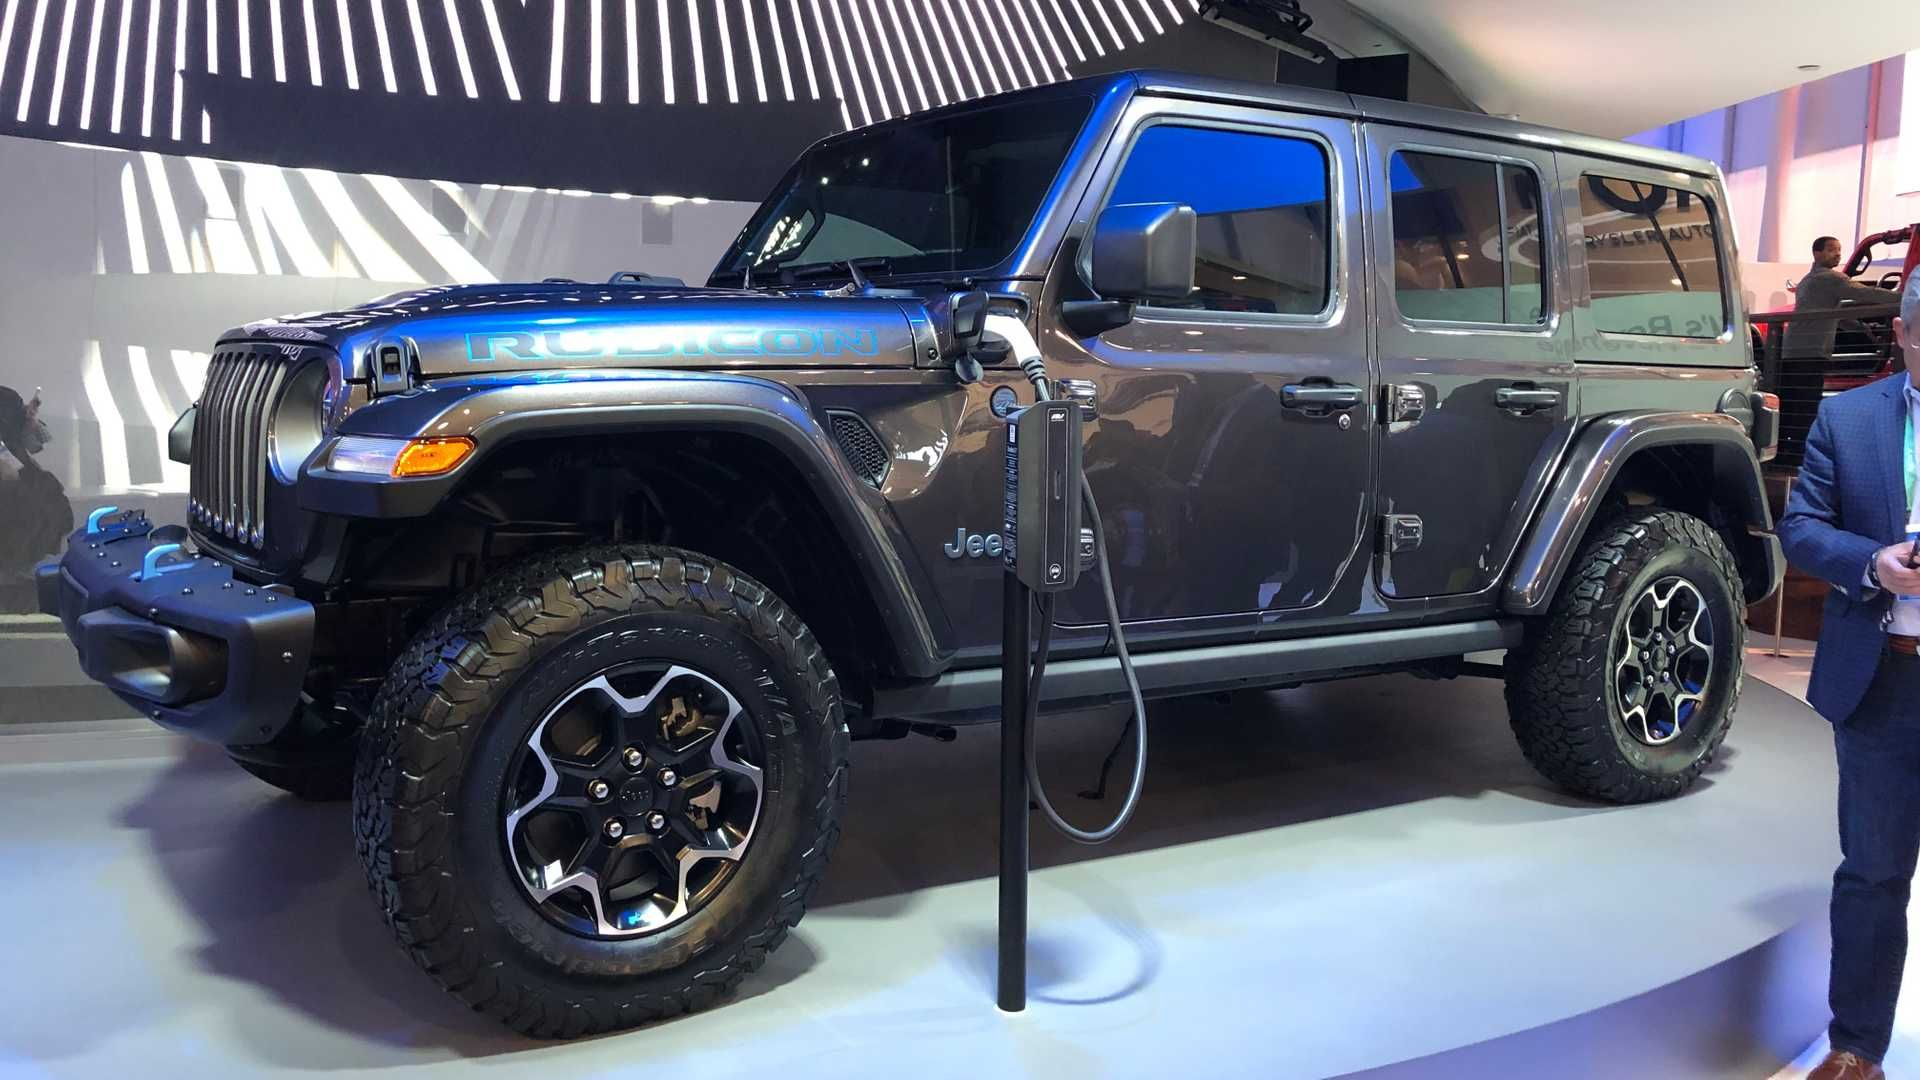 The Jeep Wrangler 4xe Is One Of The Three Plug In Electric Vehicles That Debuted At Ces 2020 In 2020 Jeep Wrangler Jeep Wrangler